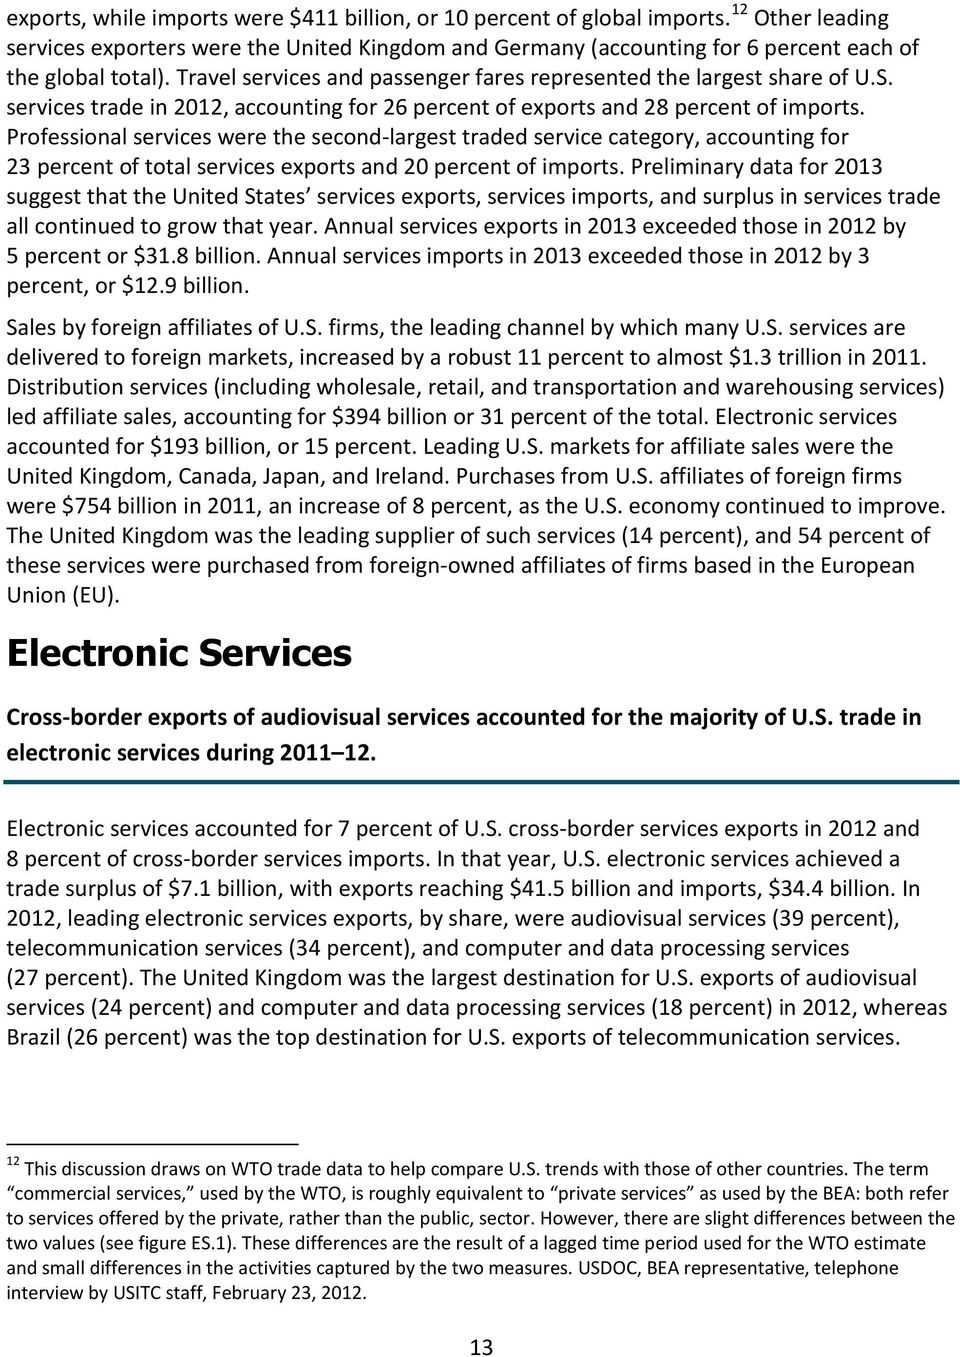 Professional services were the second-largest traded service category, accounting for 23 percent of total services exports and 20 percent of imports.